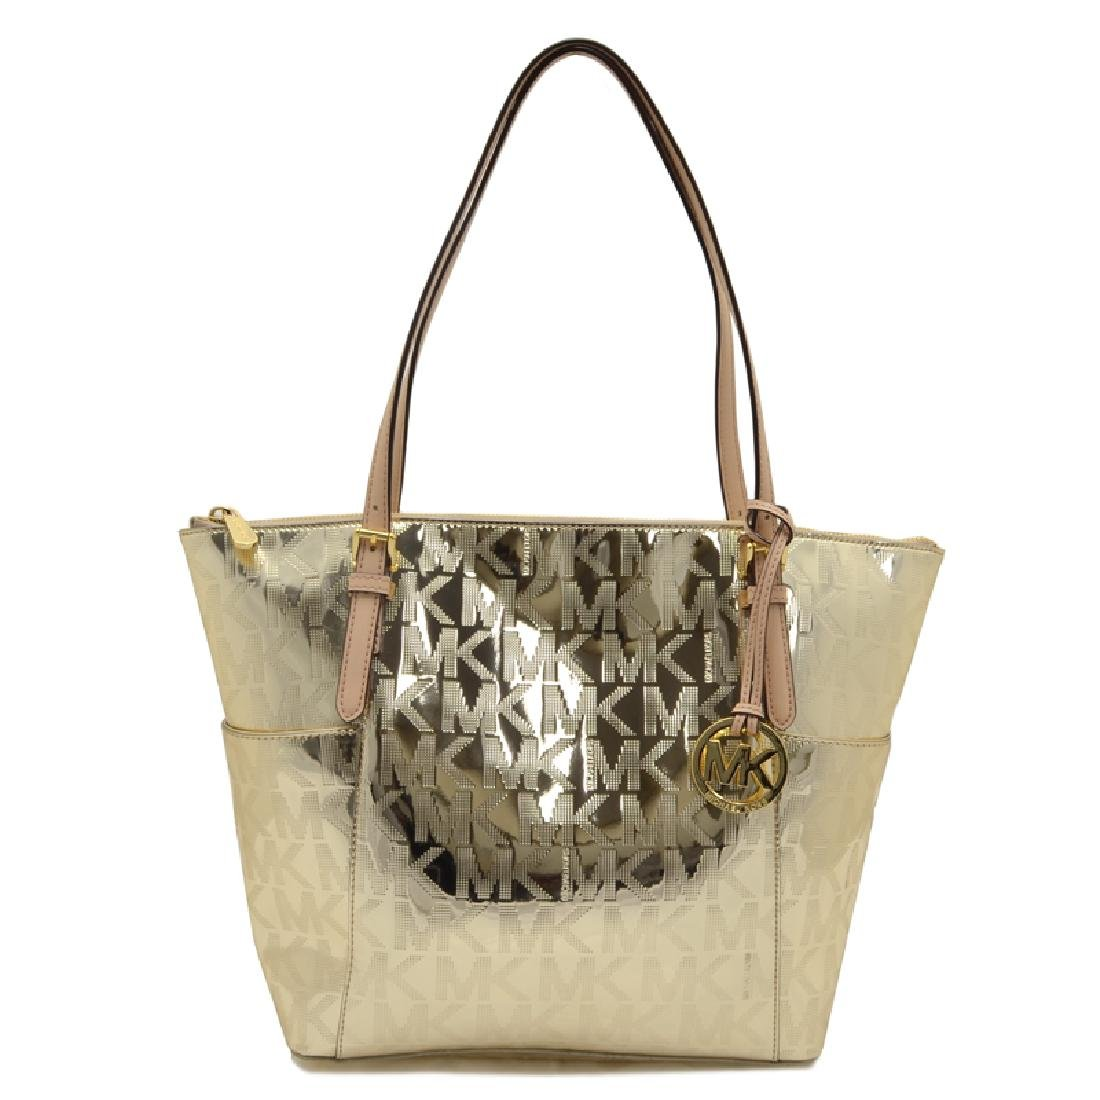 Brand New Michael Kors Jet Set Item NS East West Pale